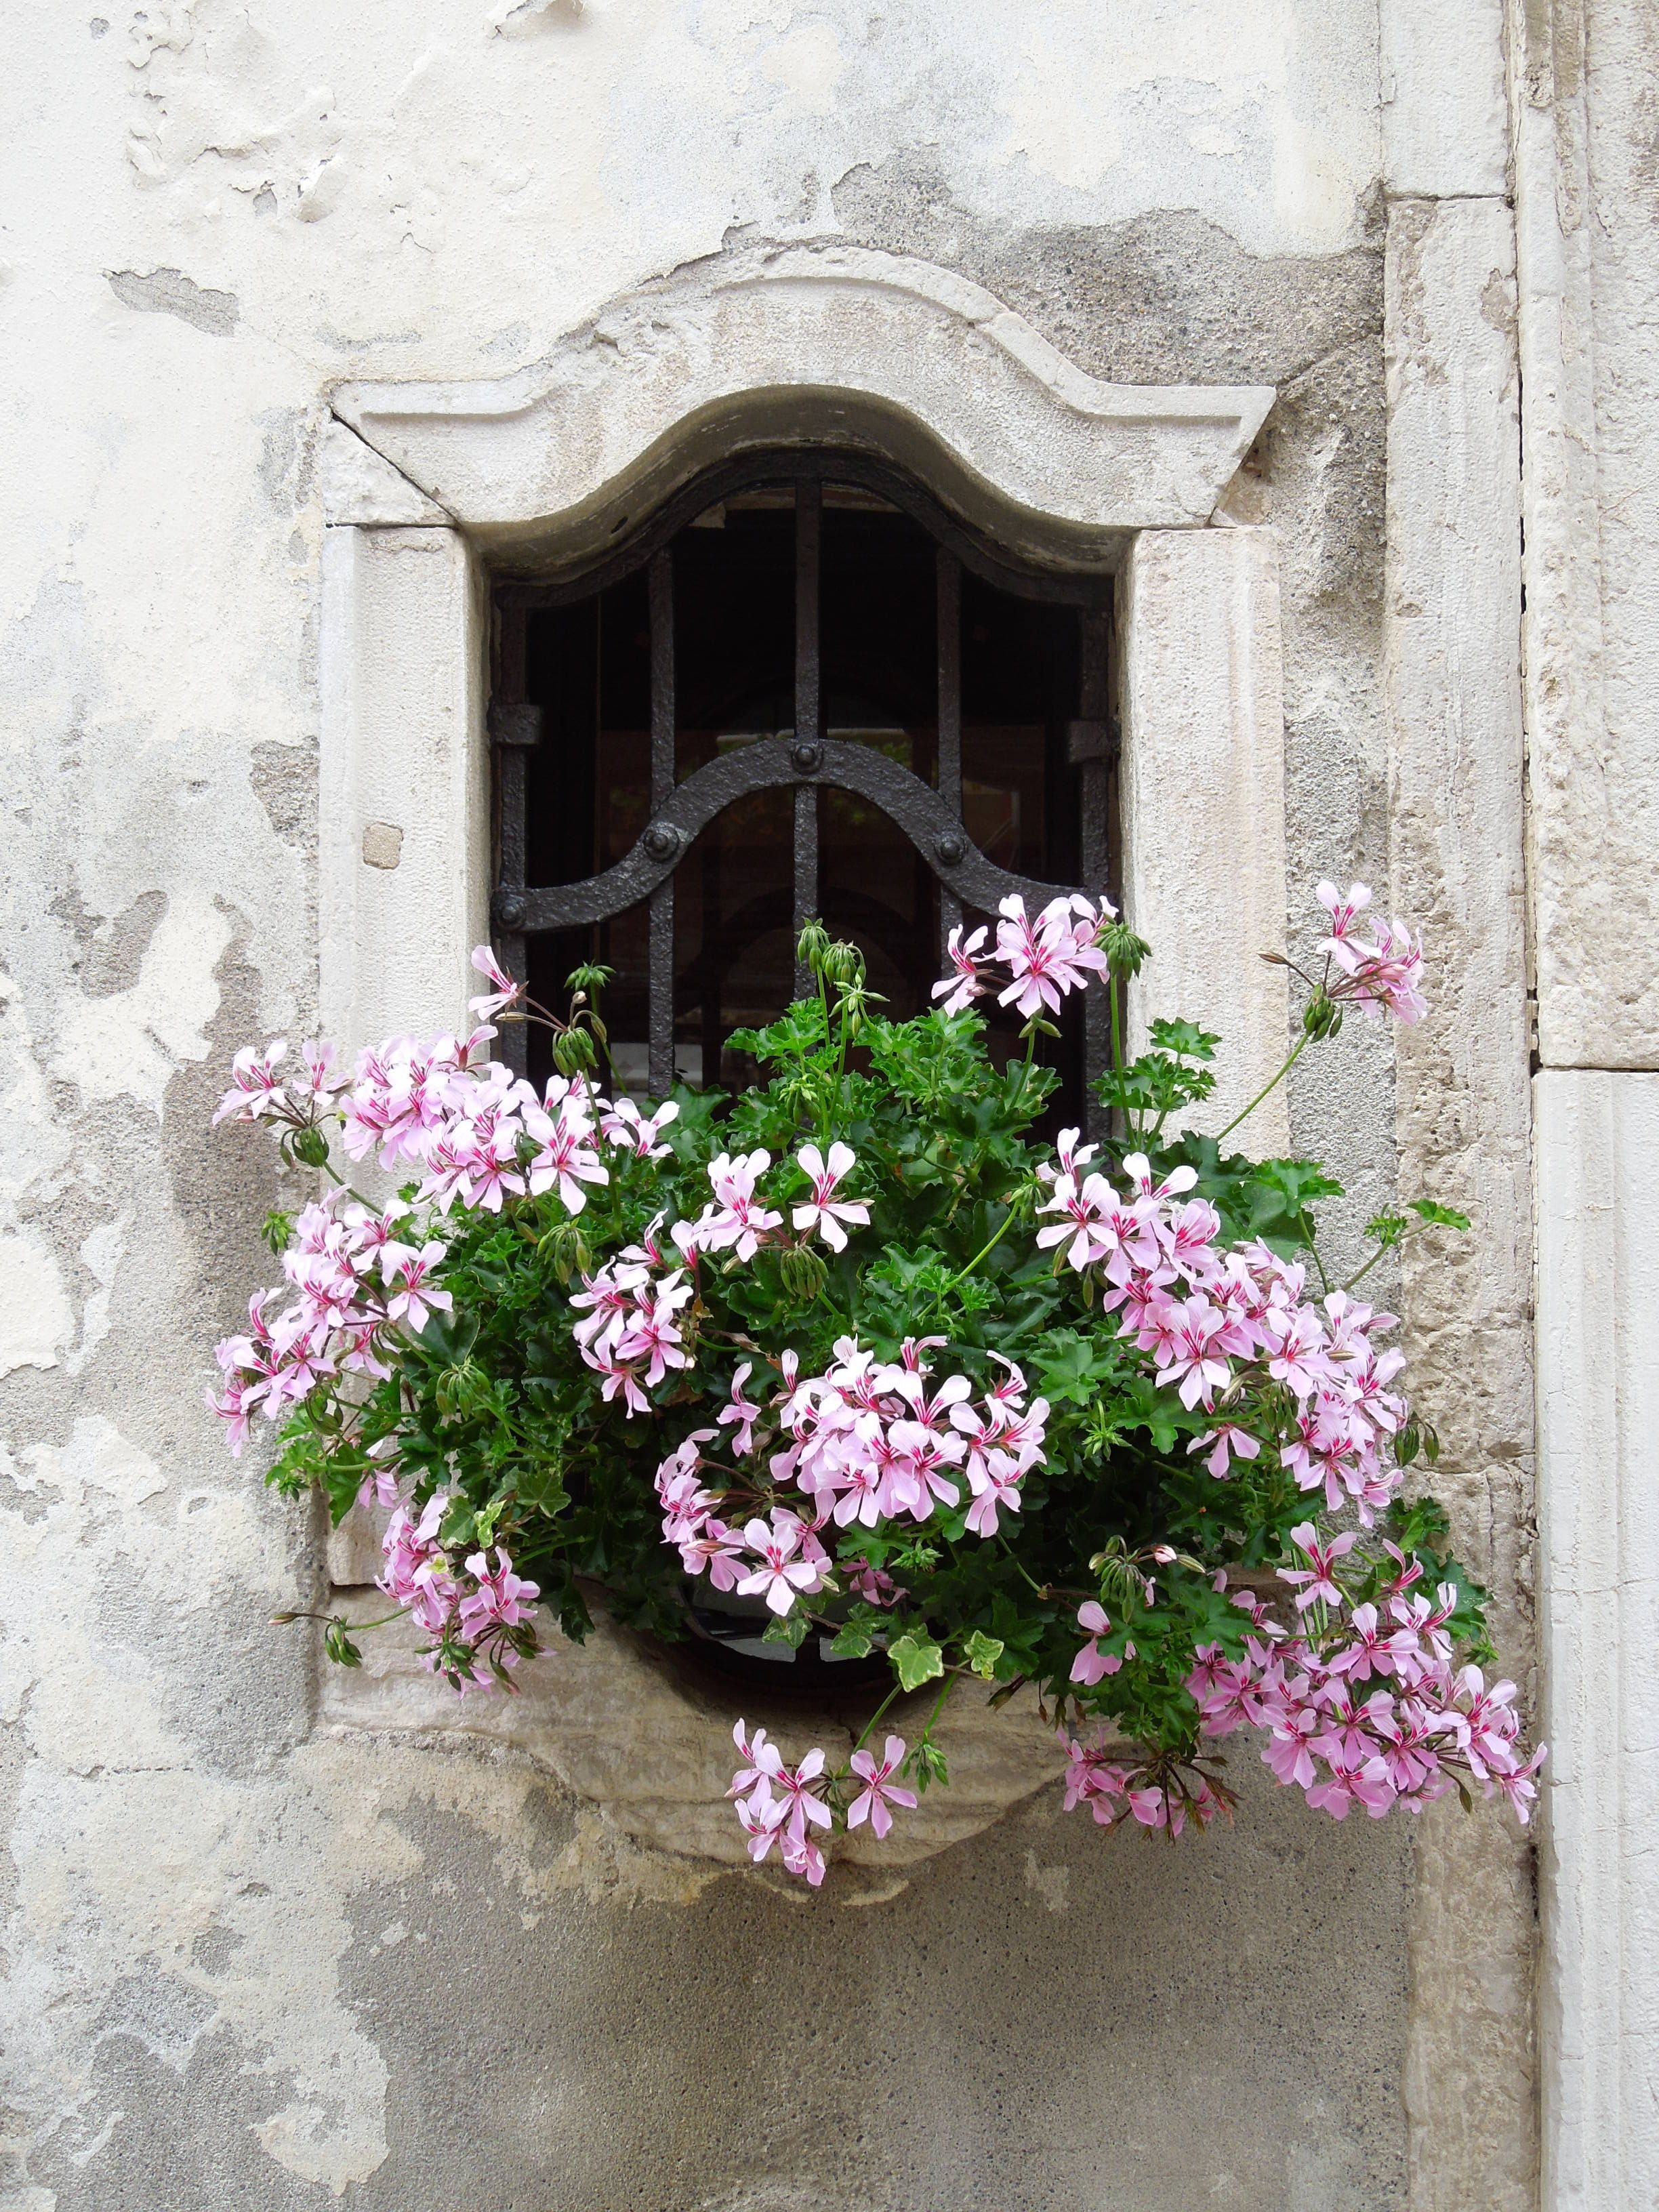 Ampel geranium is an excellent option for decorating windows and balconies